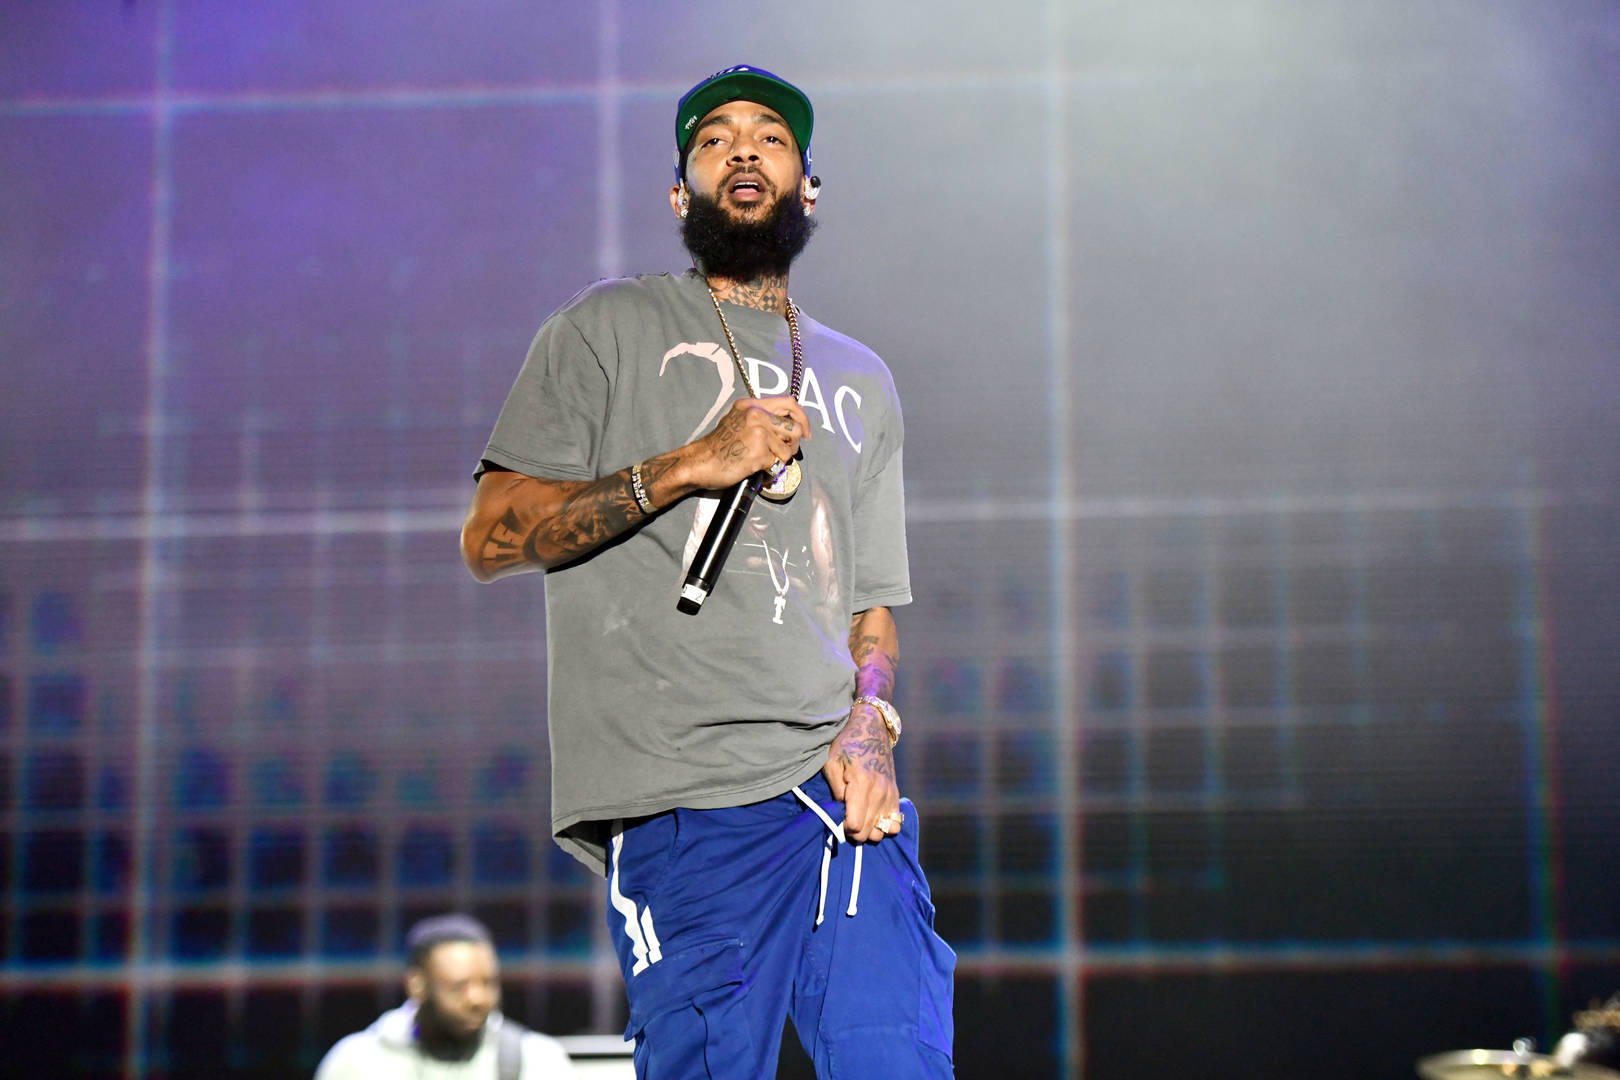 Nipsey Hussle's Memorial To Be Held At The Staples Center